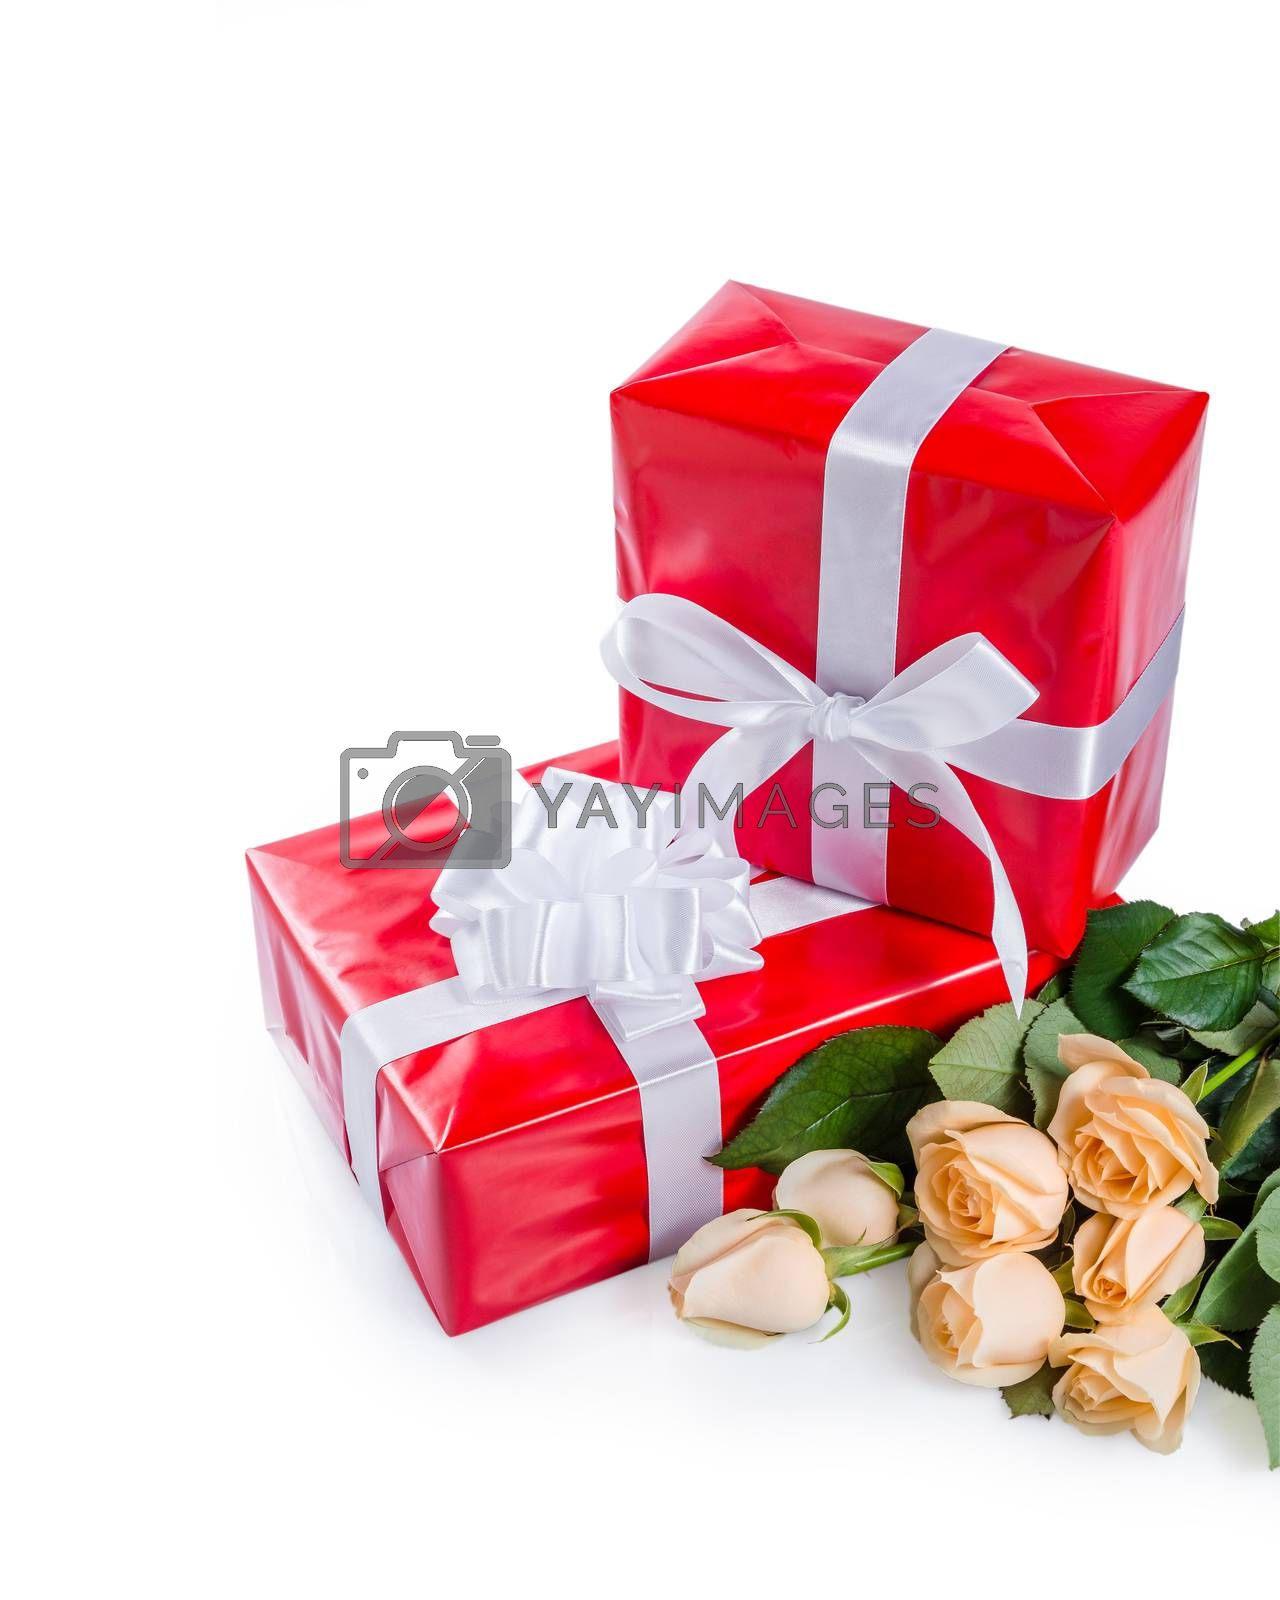 Beautiful rose flowers with gift box isolated on white background